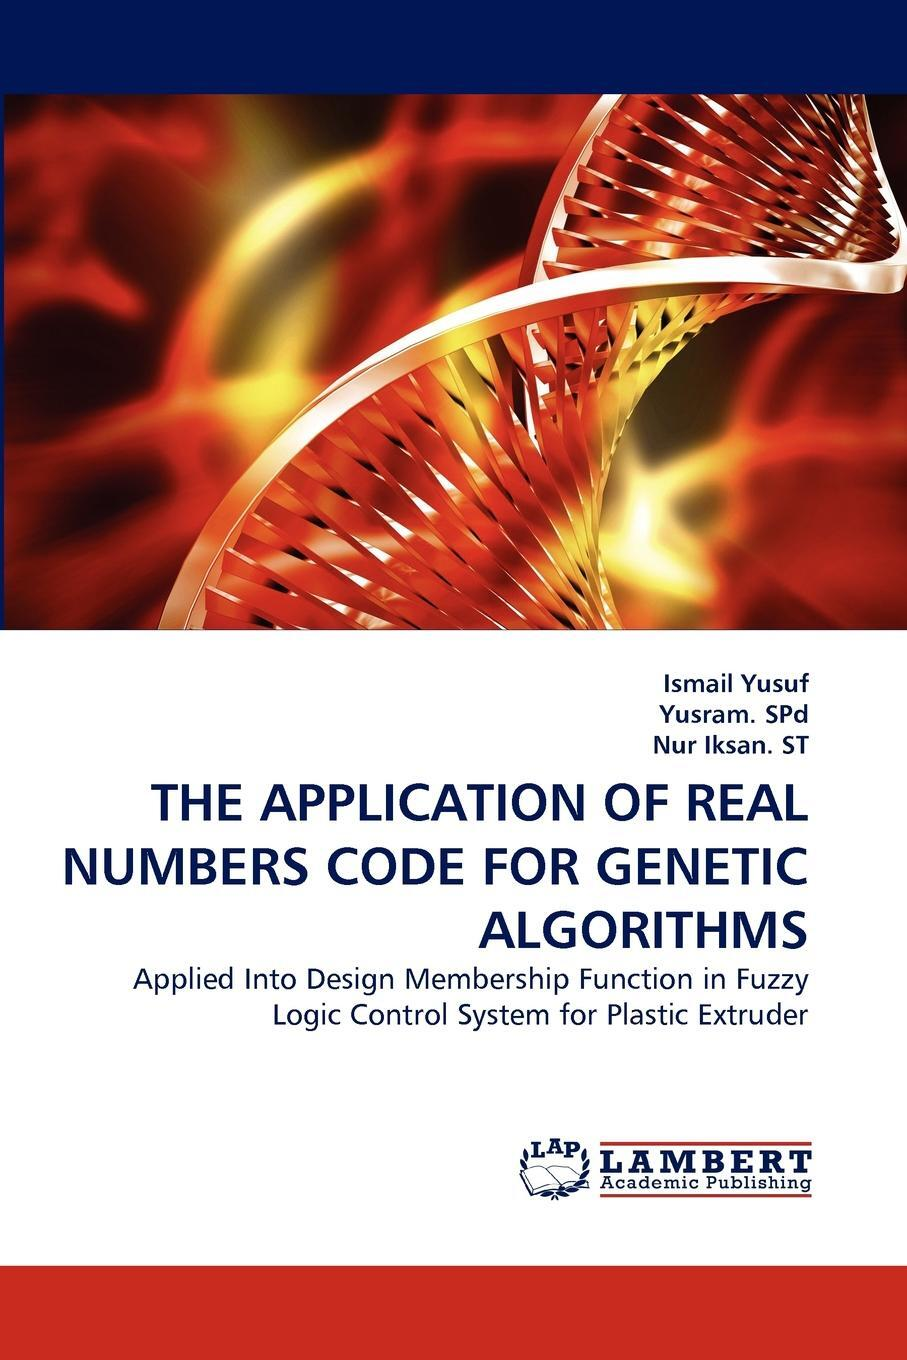 Ismail Yusuf, Yusram Spd, Nur Iksan St. The Application of Real Numbers Code for Genetic Algorithms